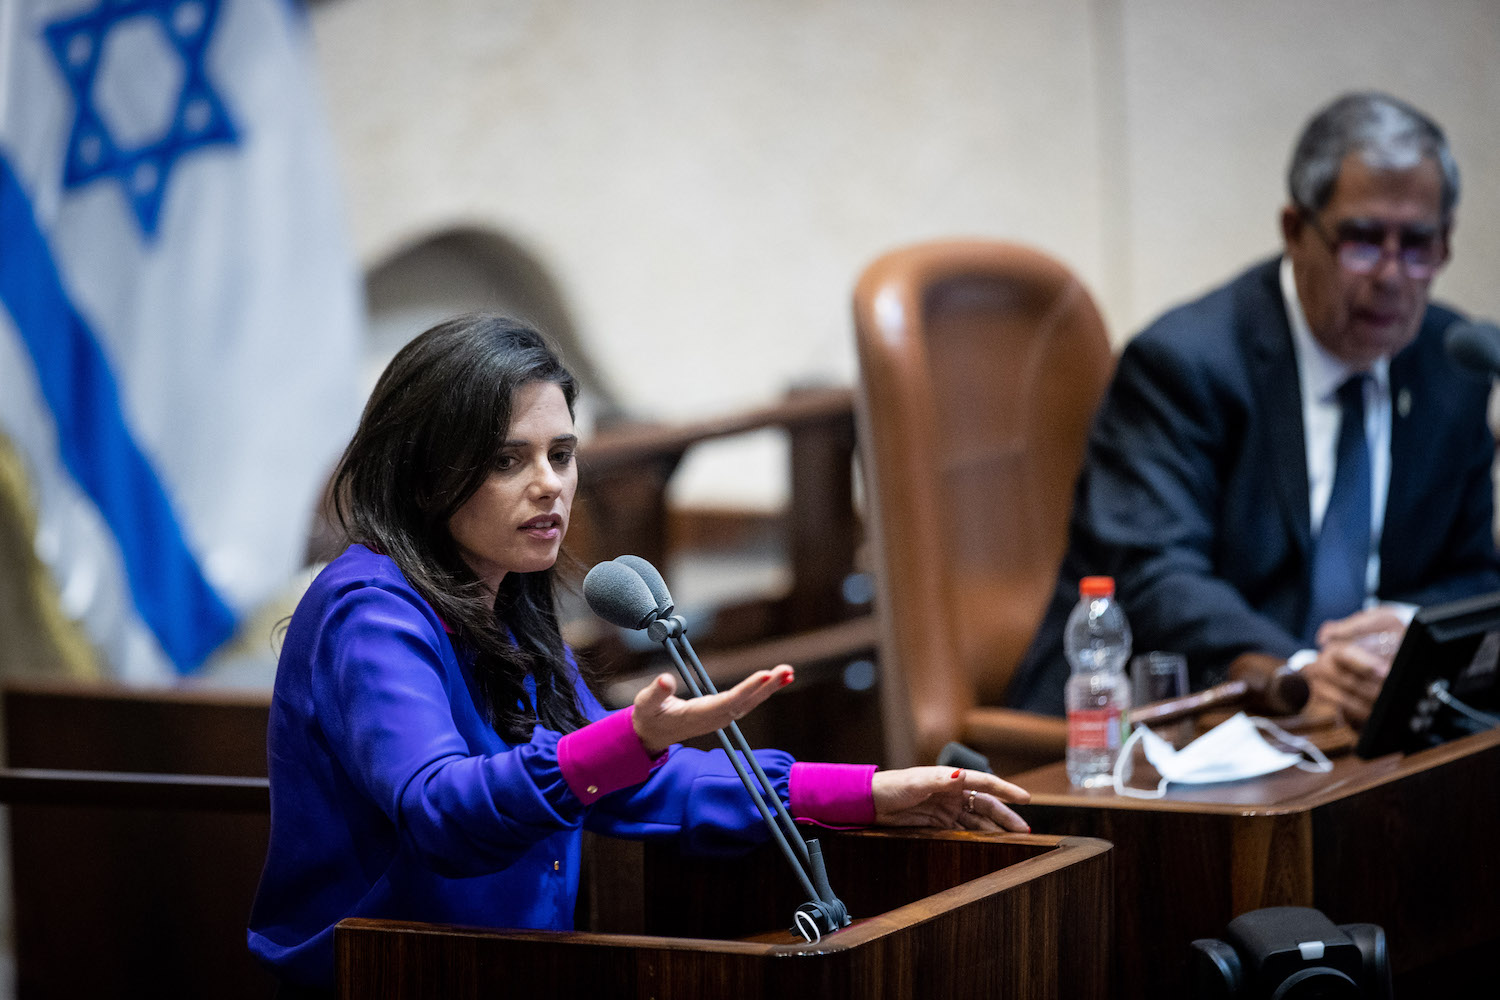 Ayelet Shaked addressed the Knesset during a discussion on the Citizenship Law, July 6, 2021. (Yonatan Sindel/Flash90)